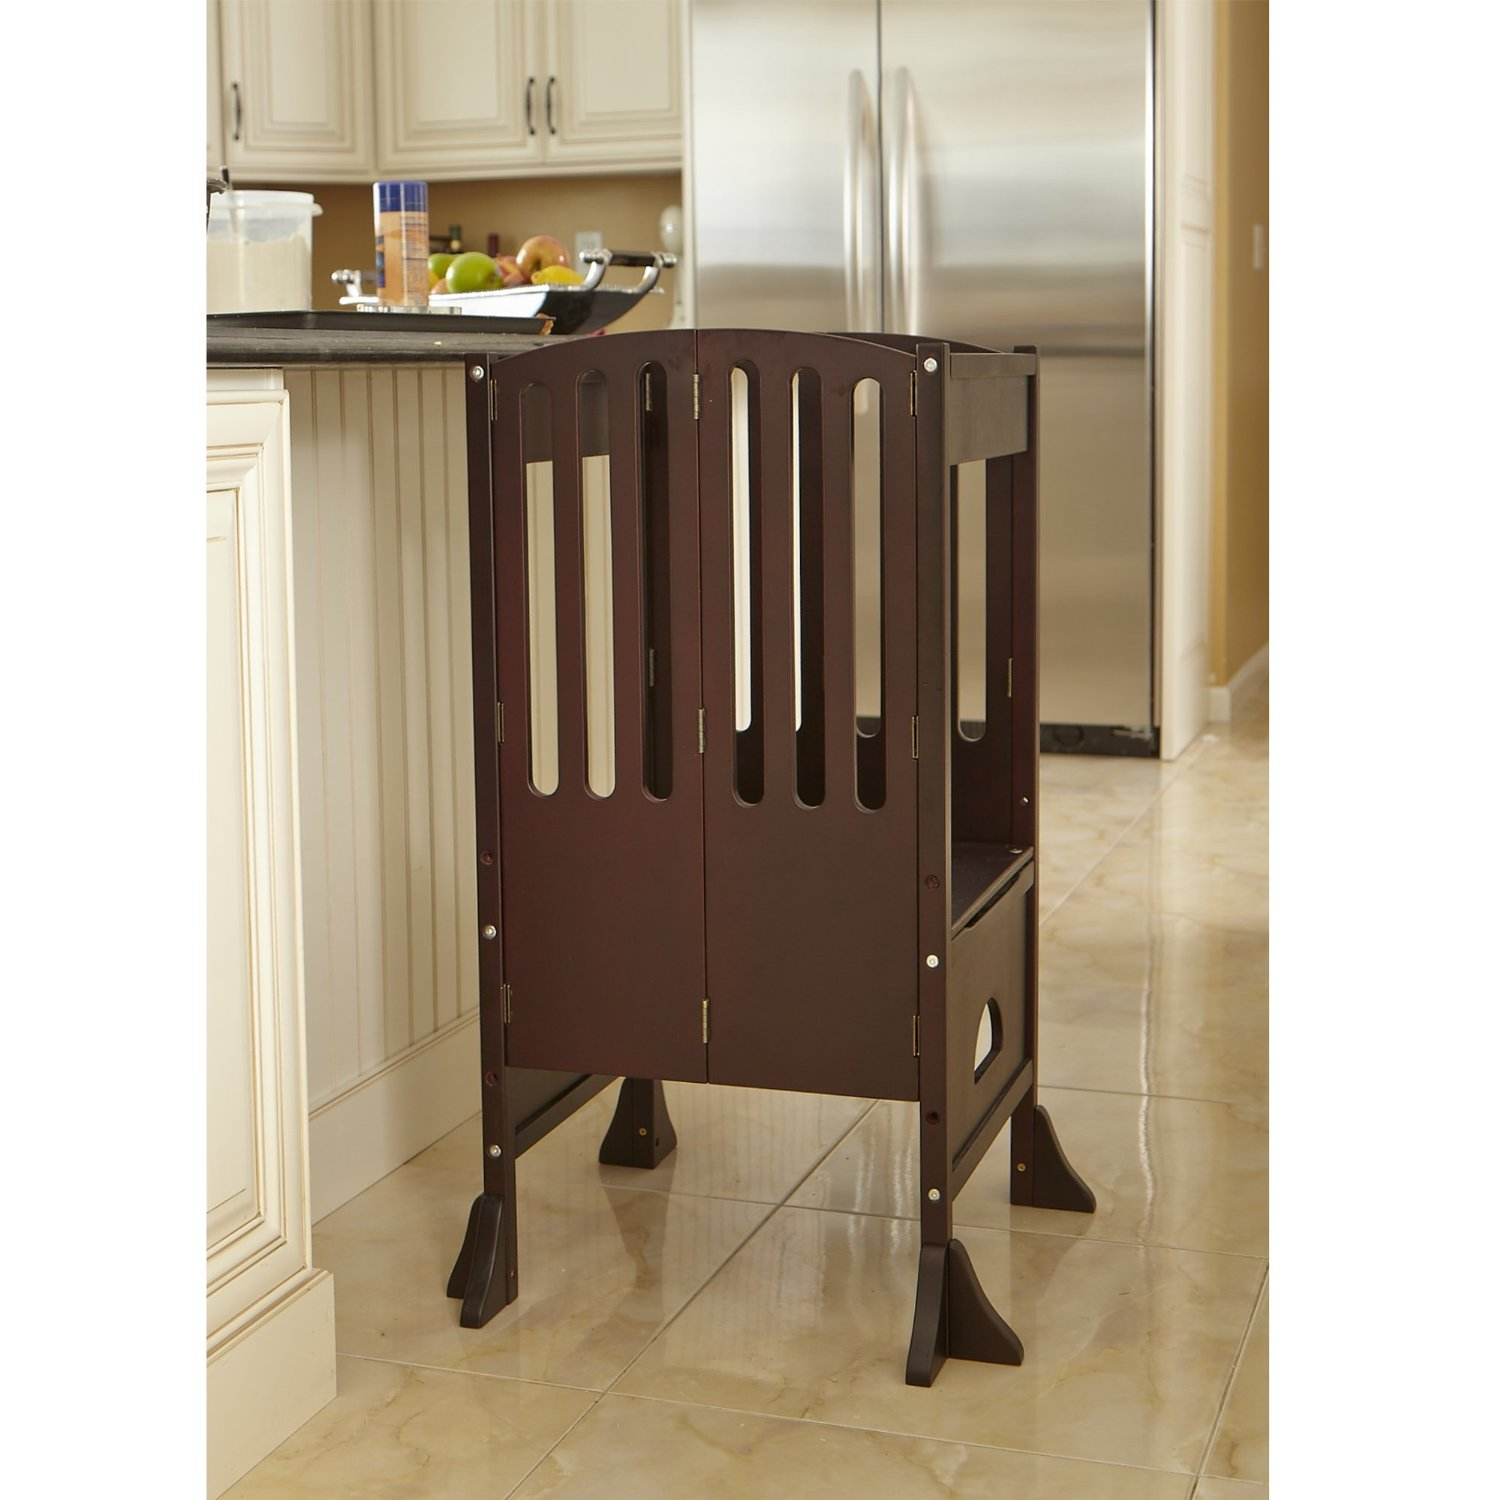 Kitchen Helper Expresso 2 Thesteppingstool Com